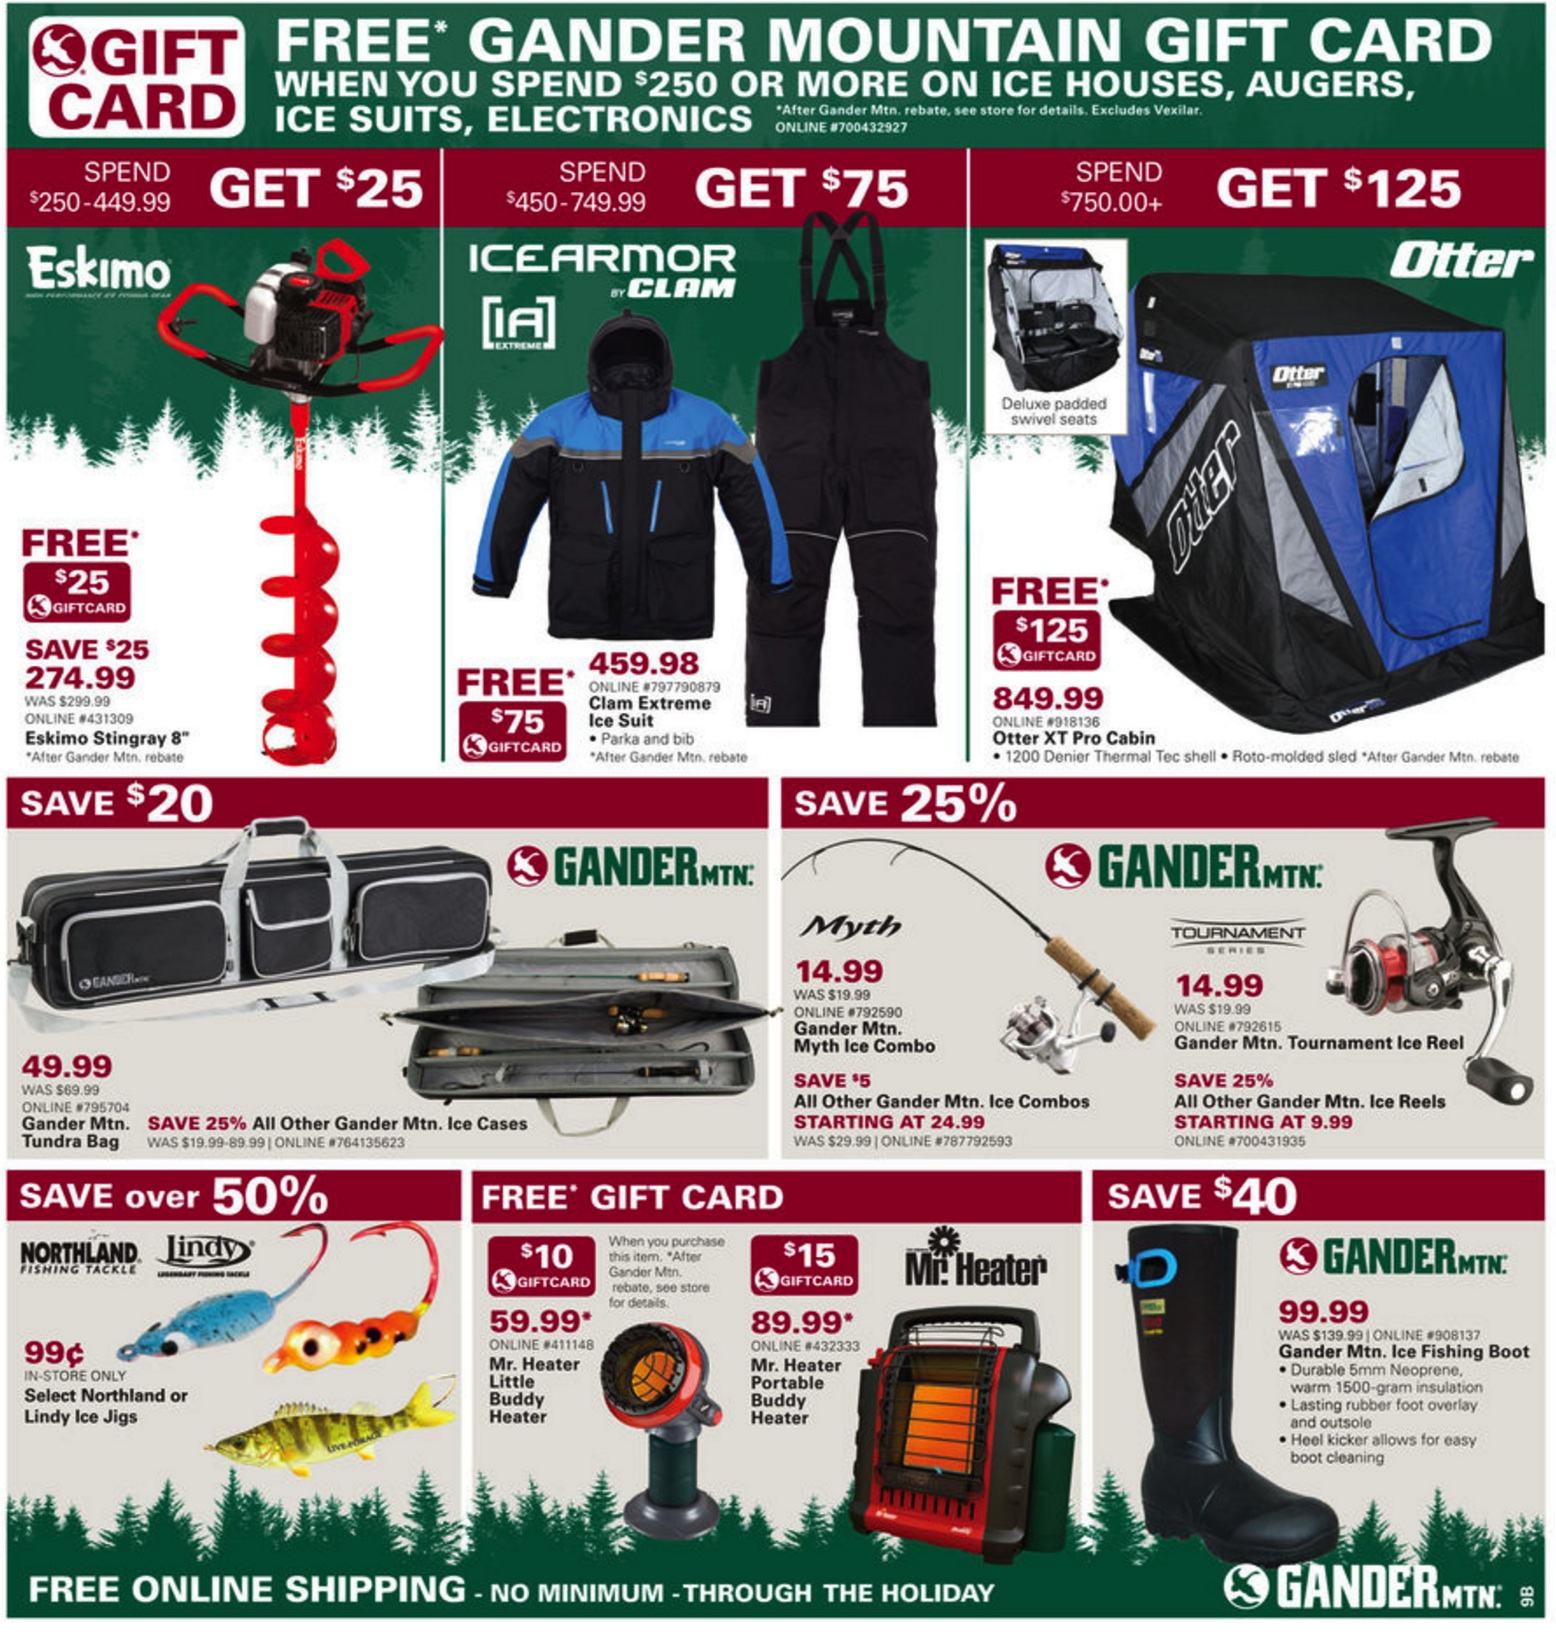 Garner Mountain Black Friday Hours: Garner Mountain will be open at 8AM on Thursday, November 24th until midnight. They will then re-open bright and early at 5AM on Friday.